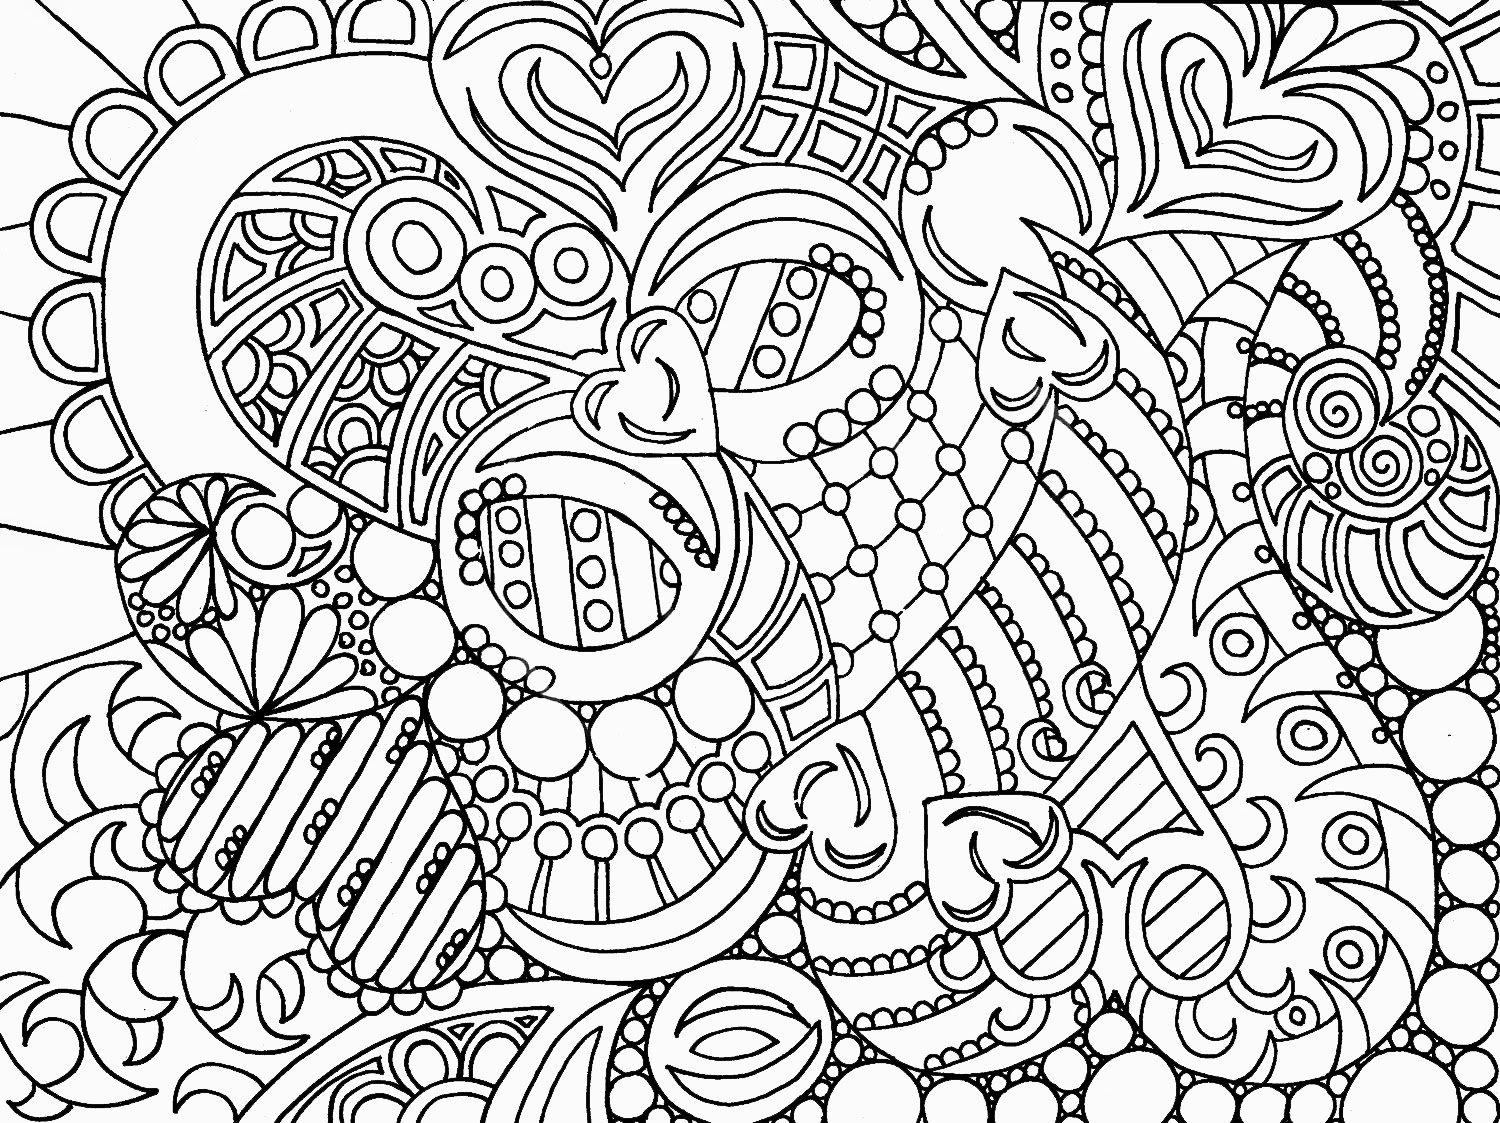 stress relieving coloring pages - Trending Stress-Relief Therapy Adult Coloring Books